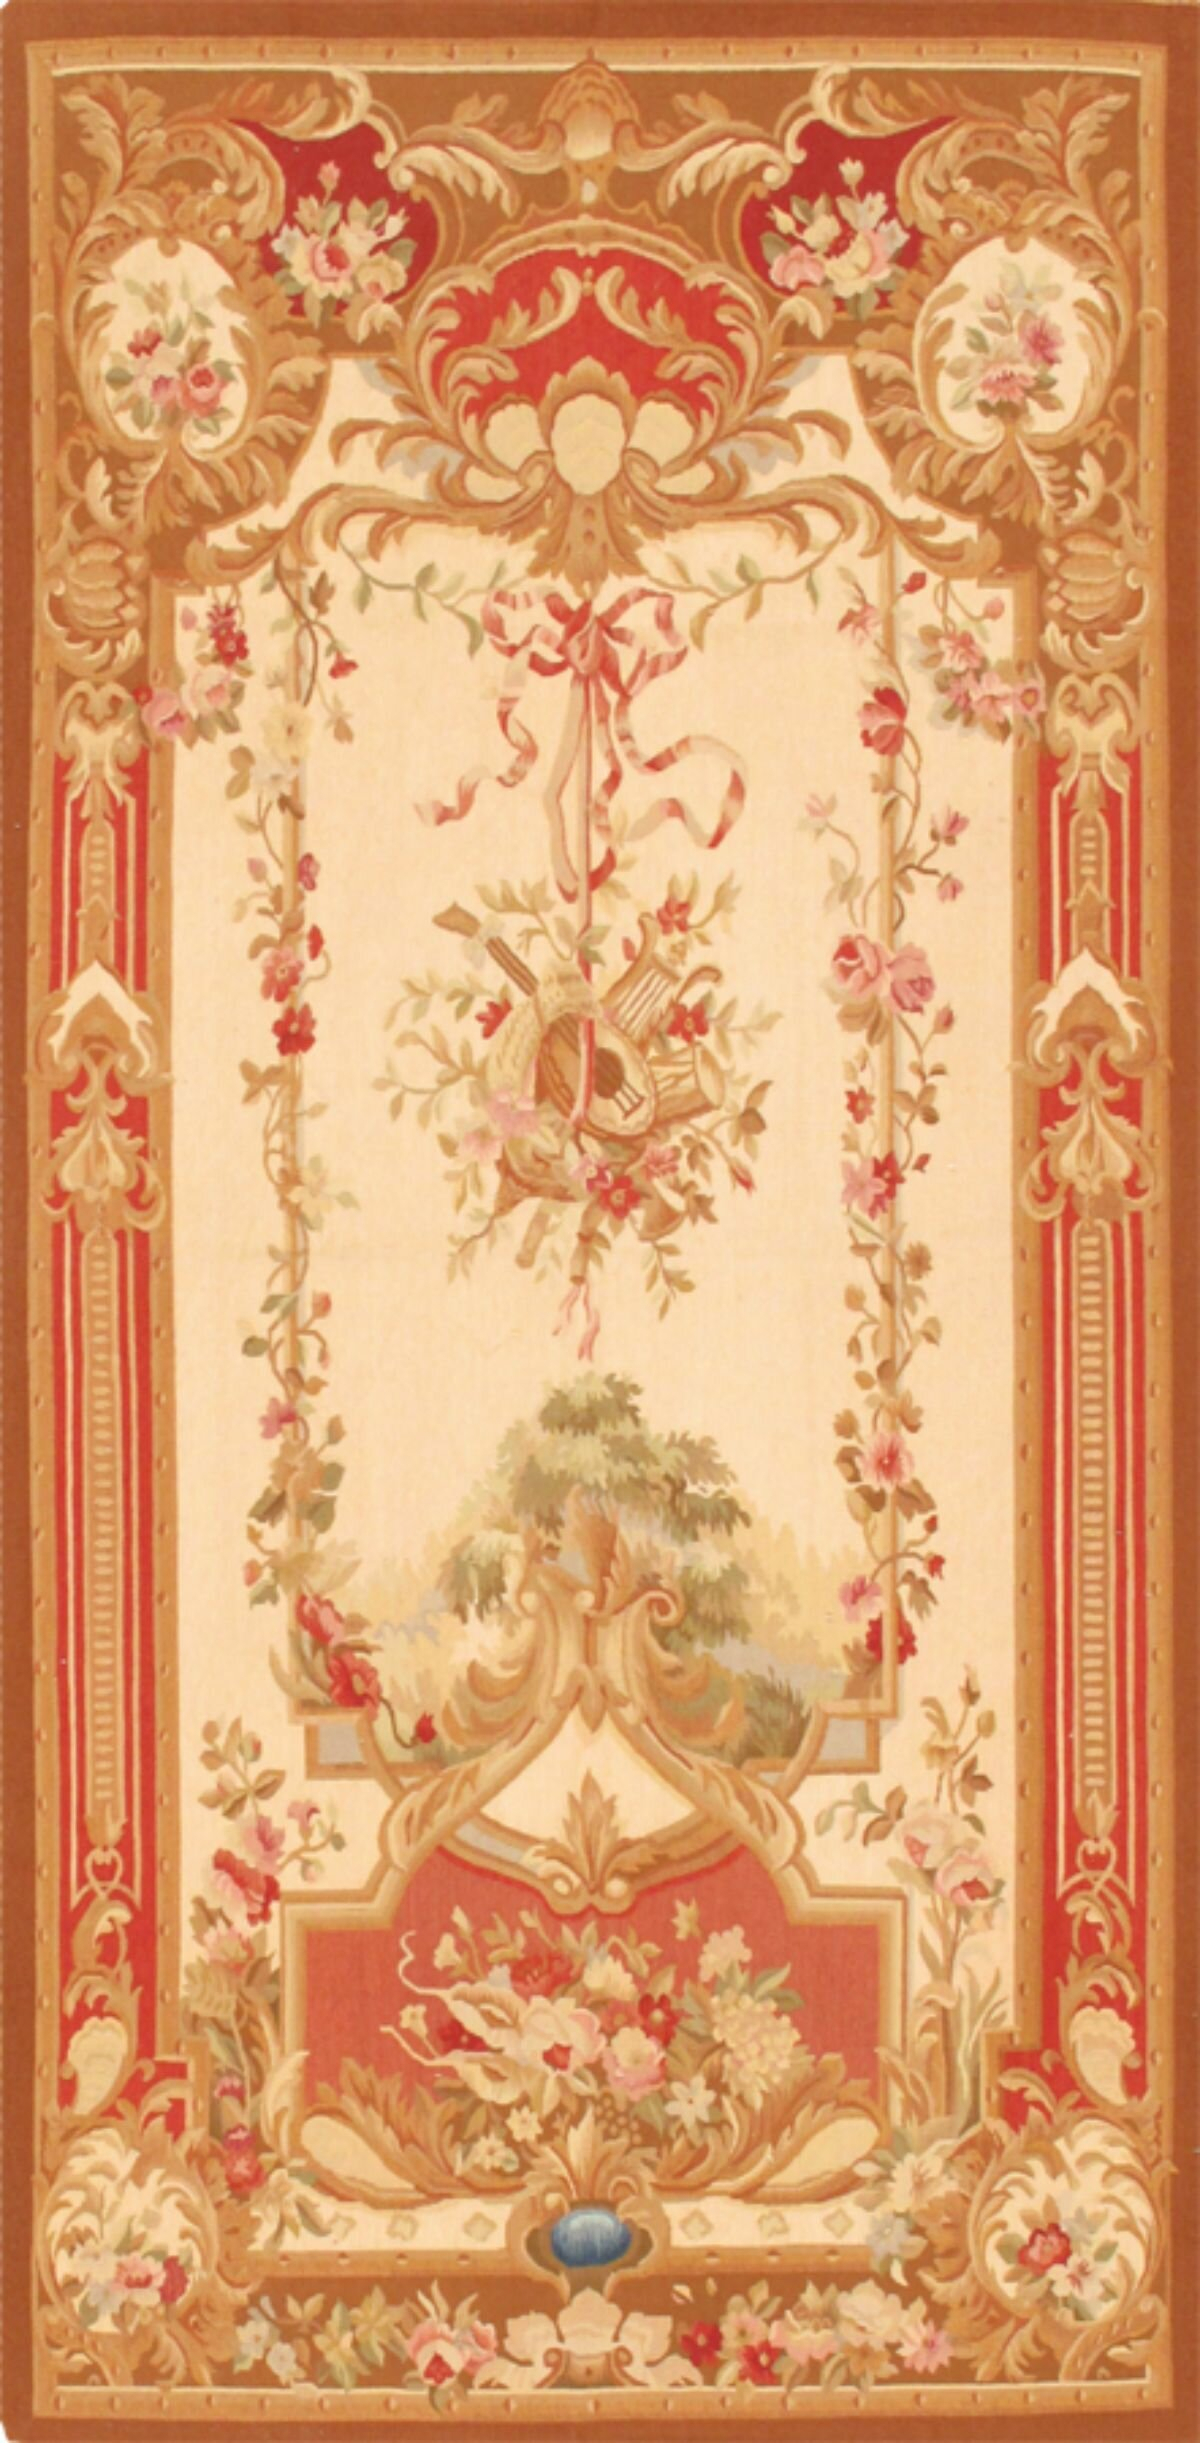 Tapestry Intended For Current Blended Fabric Hidden Garden Chinoiserie Wall Hangings With Rod (View 4 of 20)